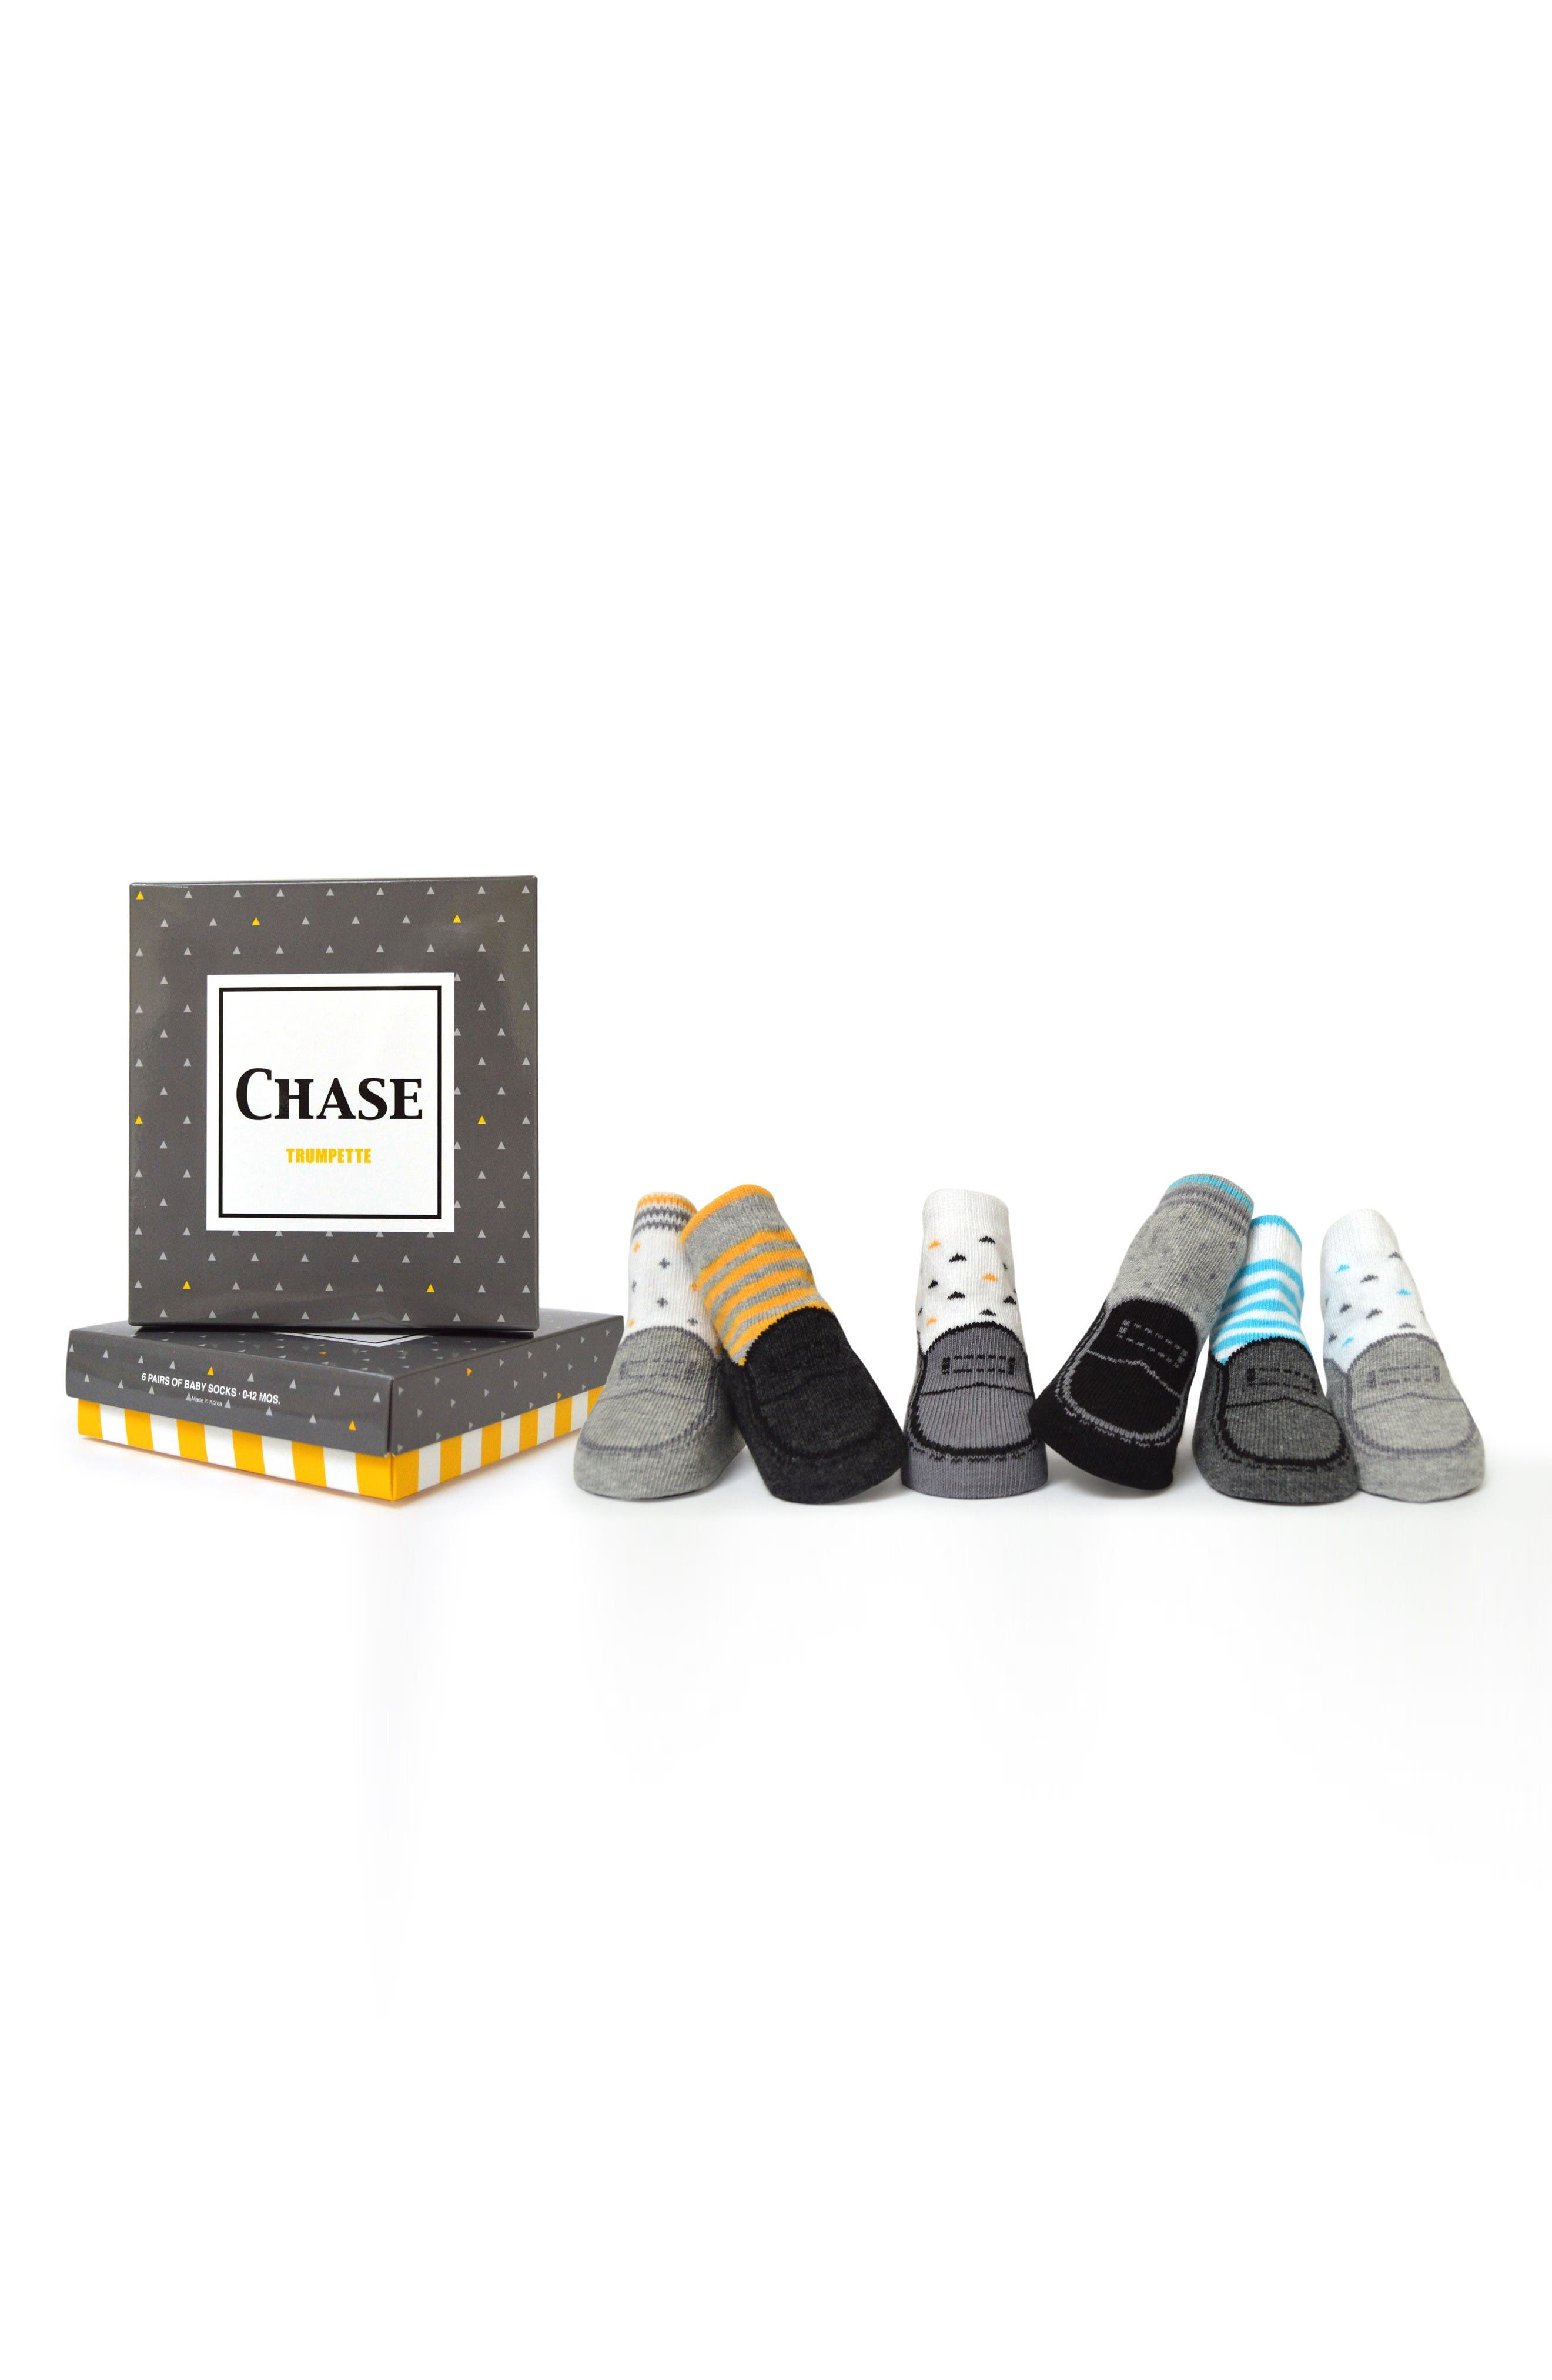 Main Image - Trumpette Chase 6-Pack Socks (Baby)